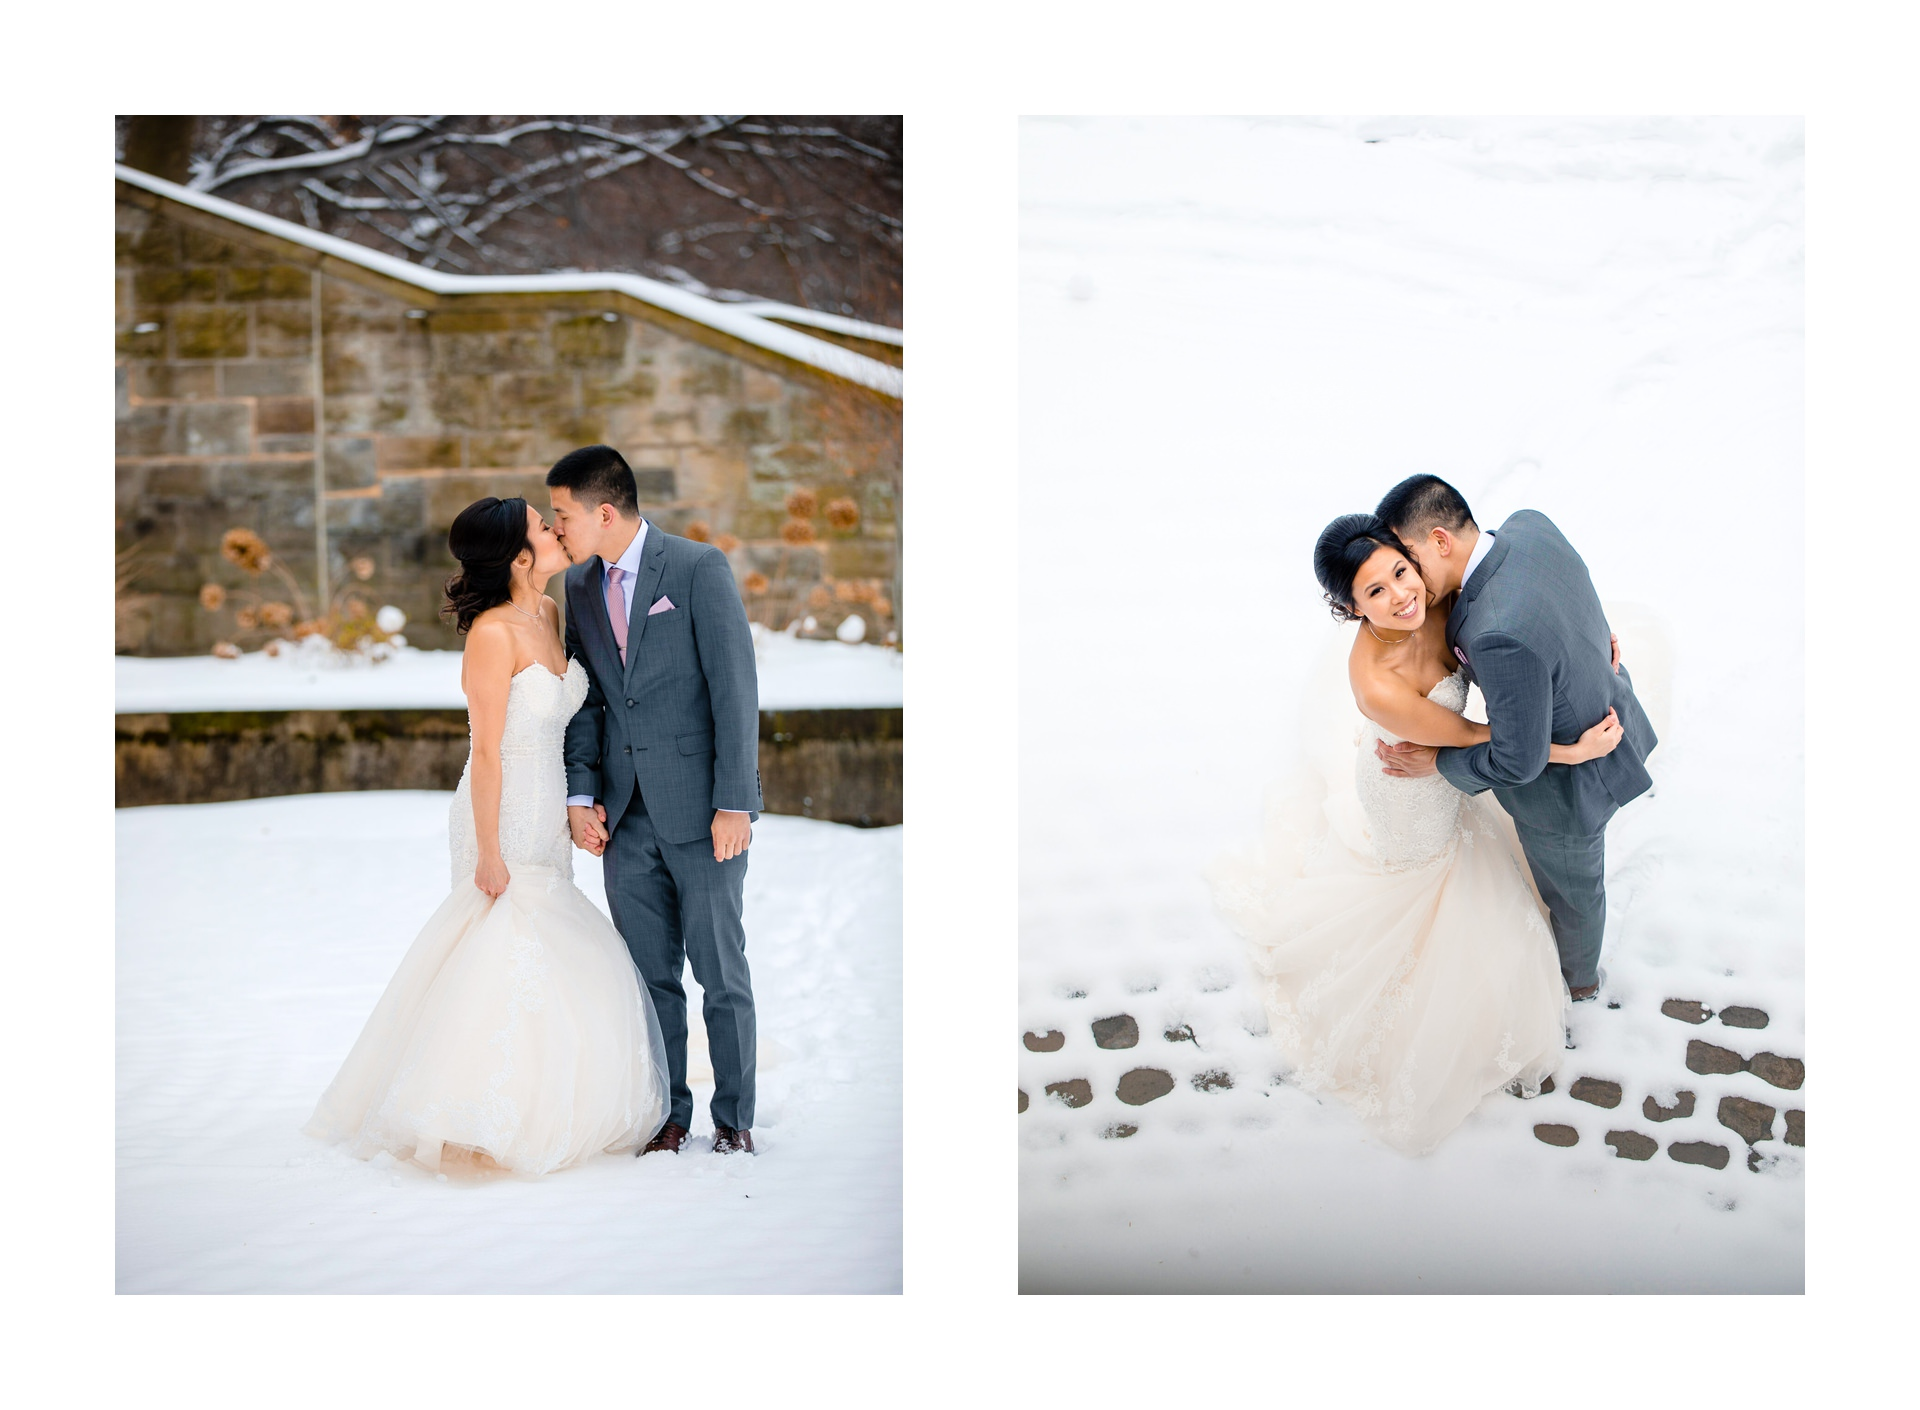 Windows on the River Winter Wedding Photographer in Cleveland 47.jpg